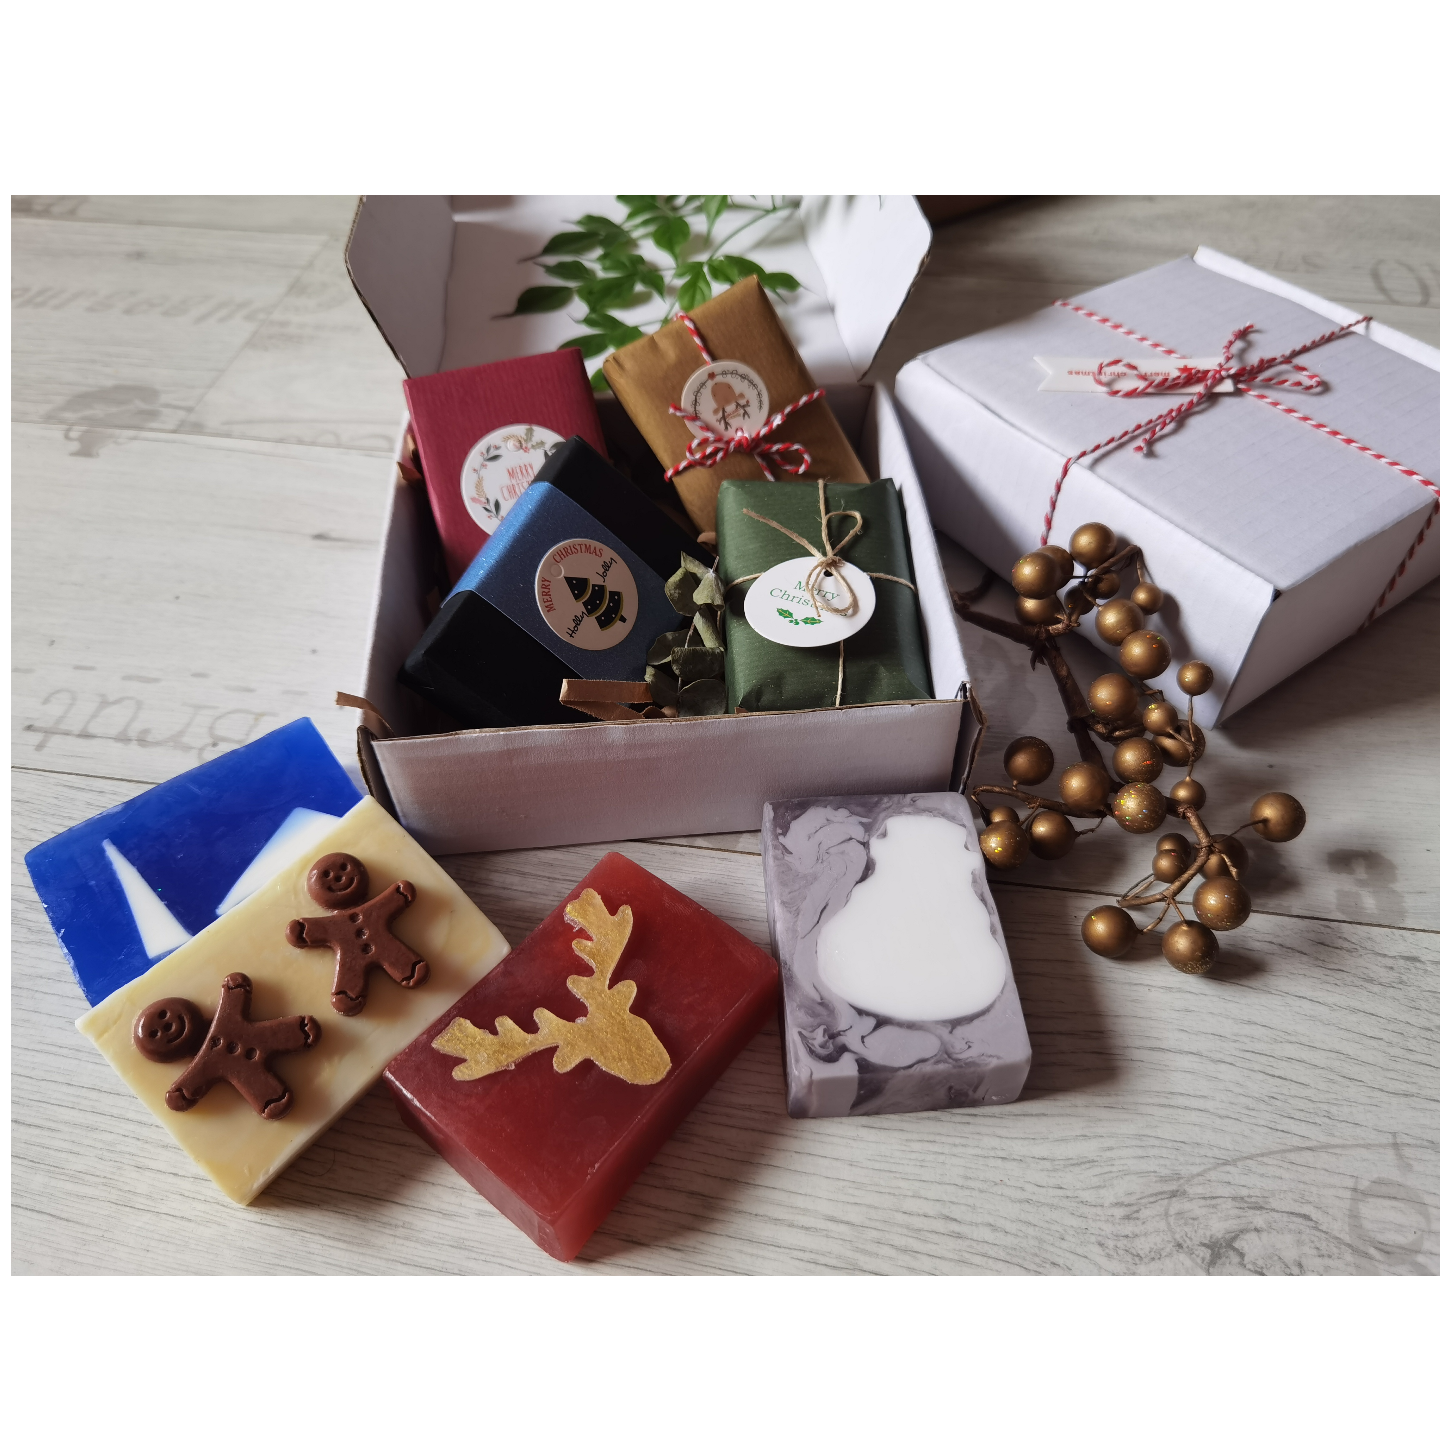 Jolly 4 Box - Christmas Themed Soaps